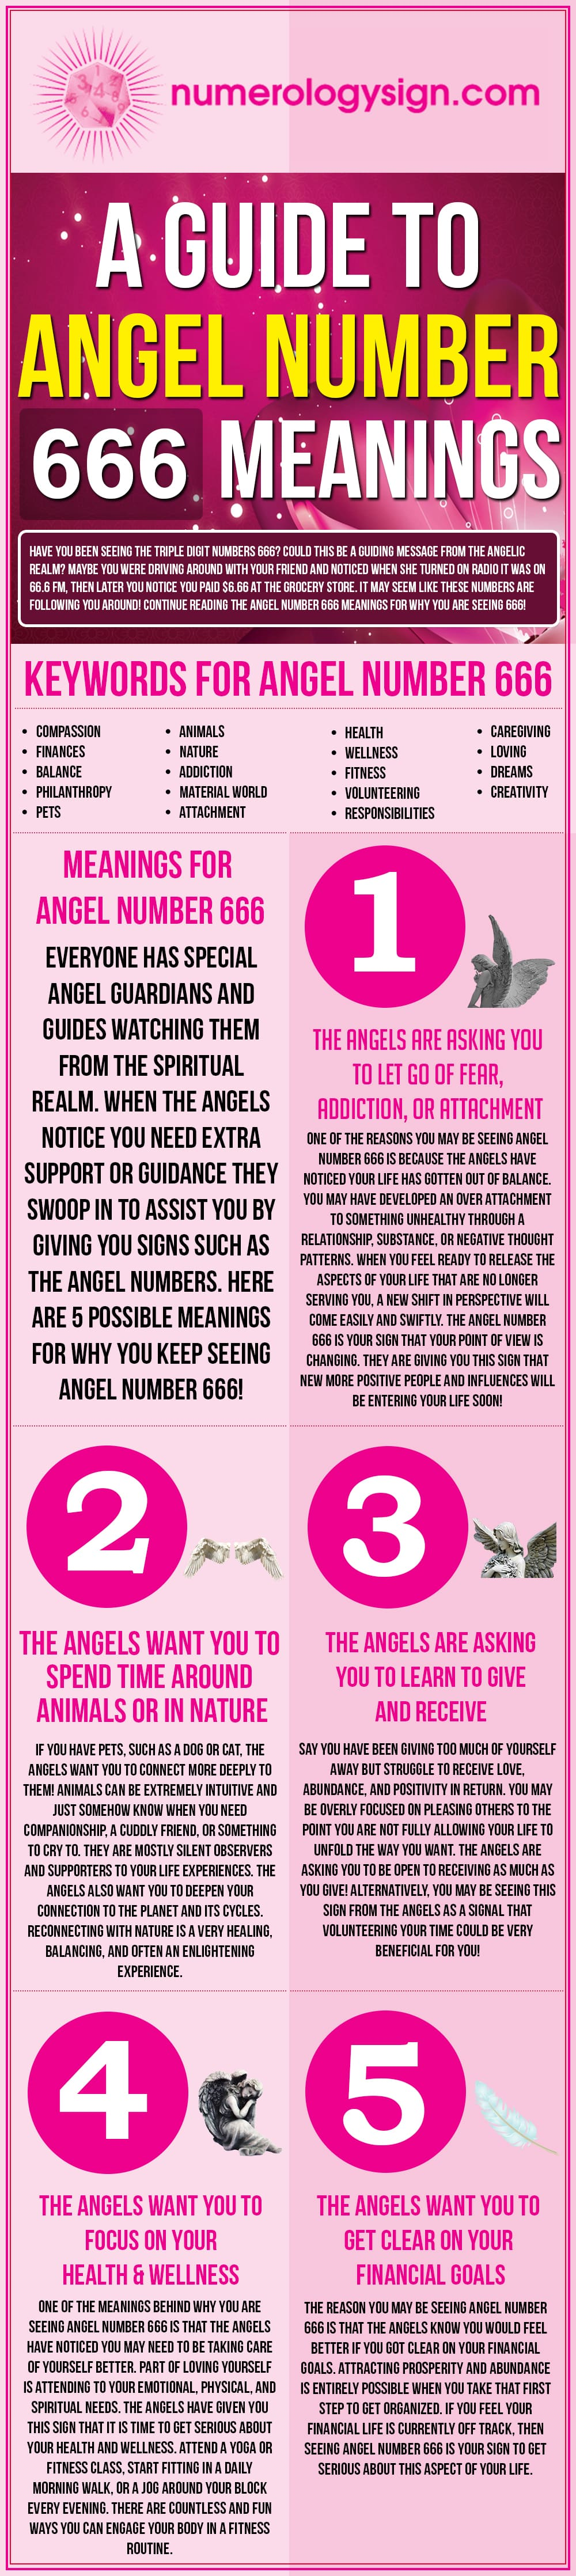 Angel Number 666 Meanings Infographic